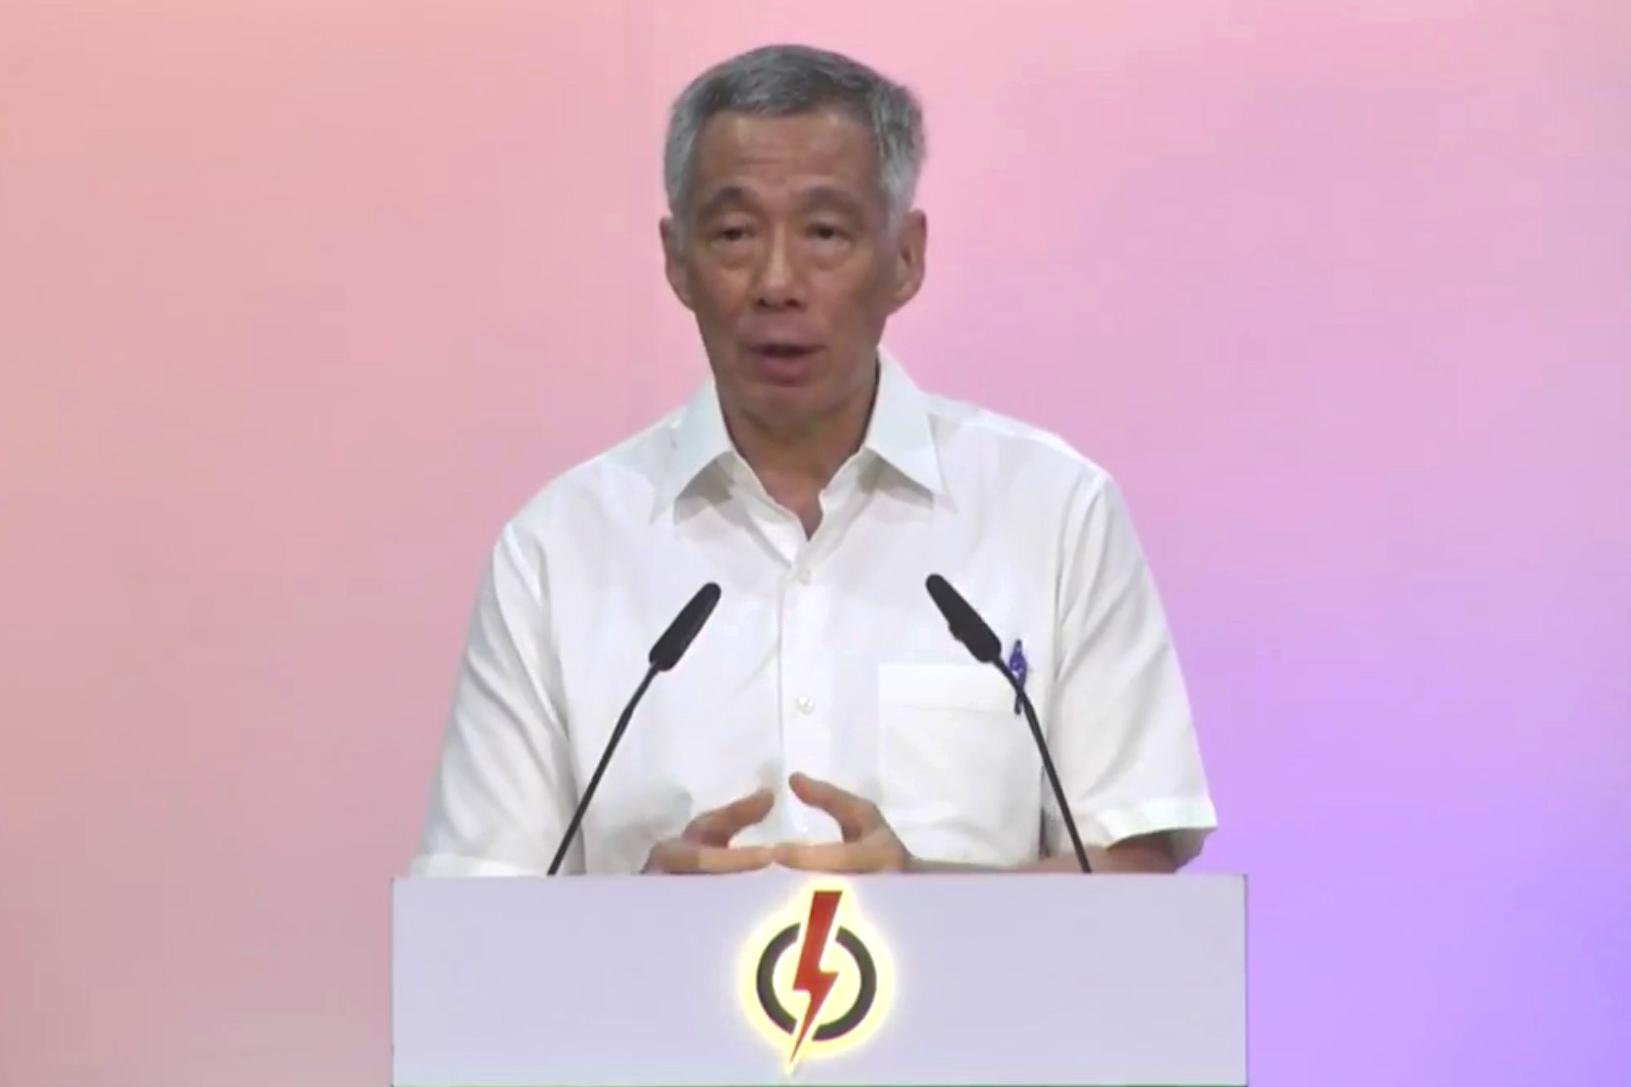 5 senior PAP members step down from CEC, making way for 4G leaders